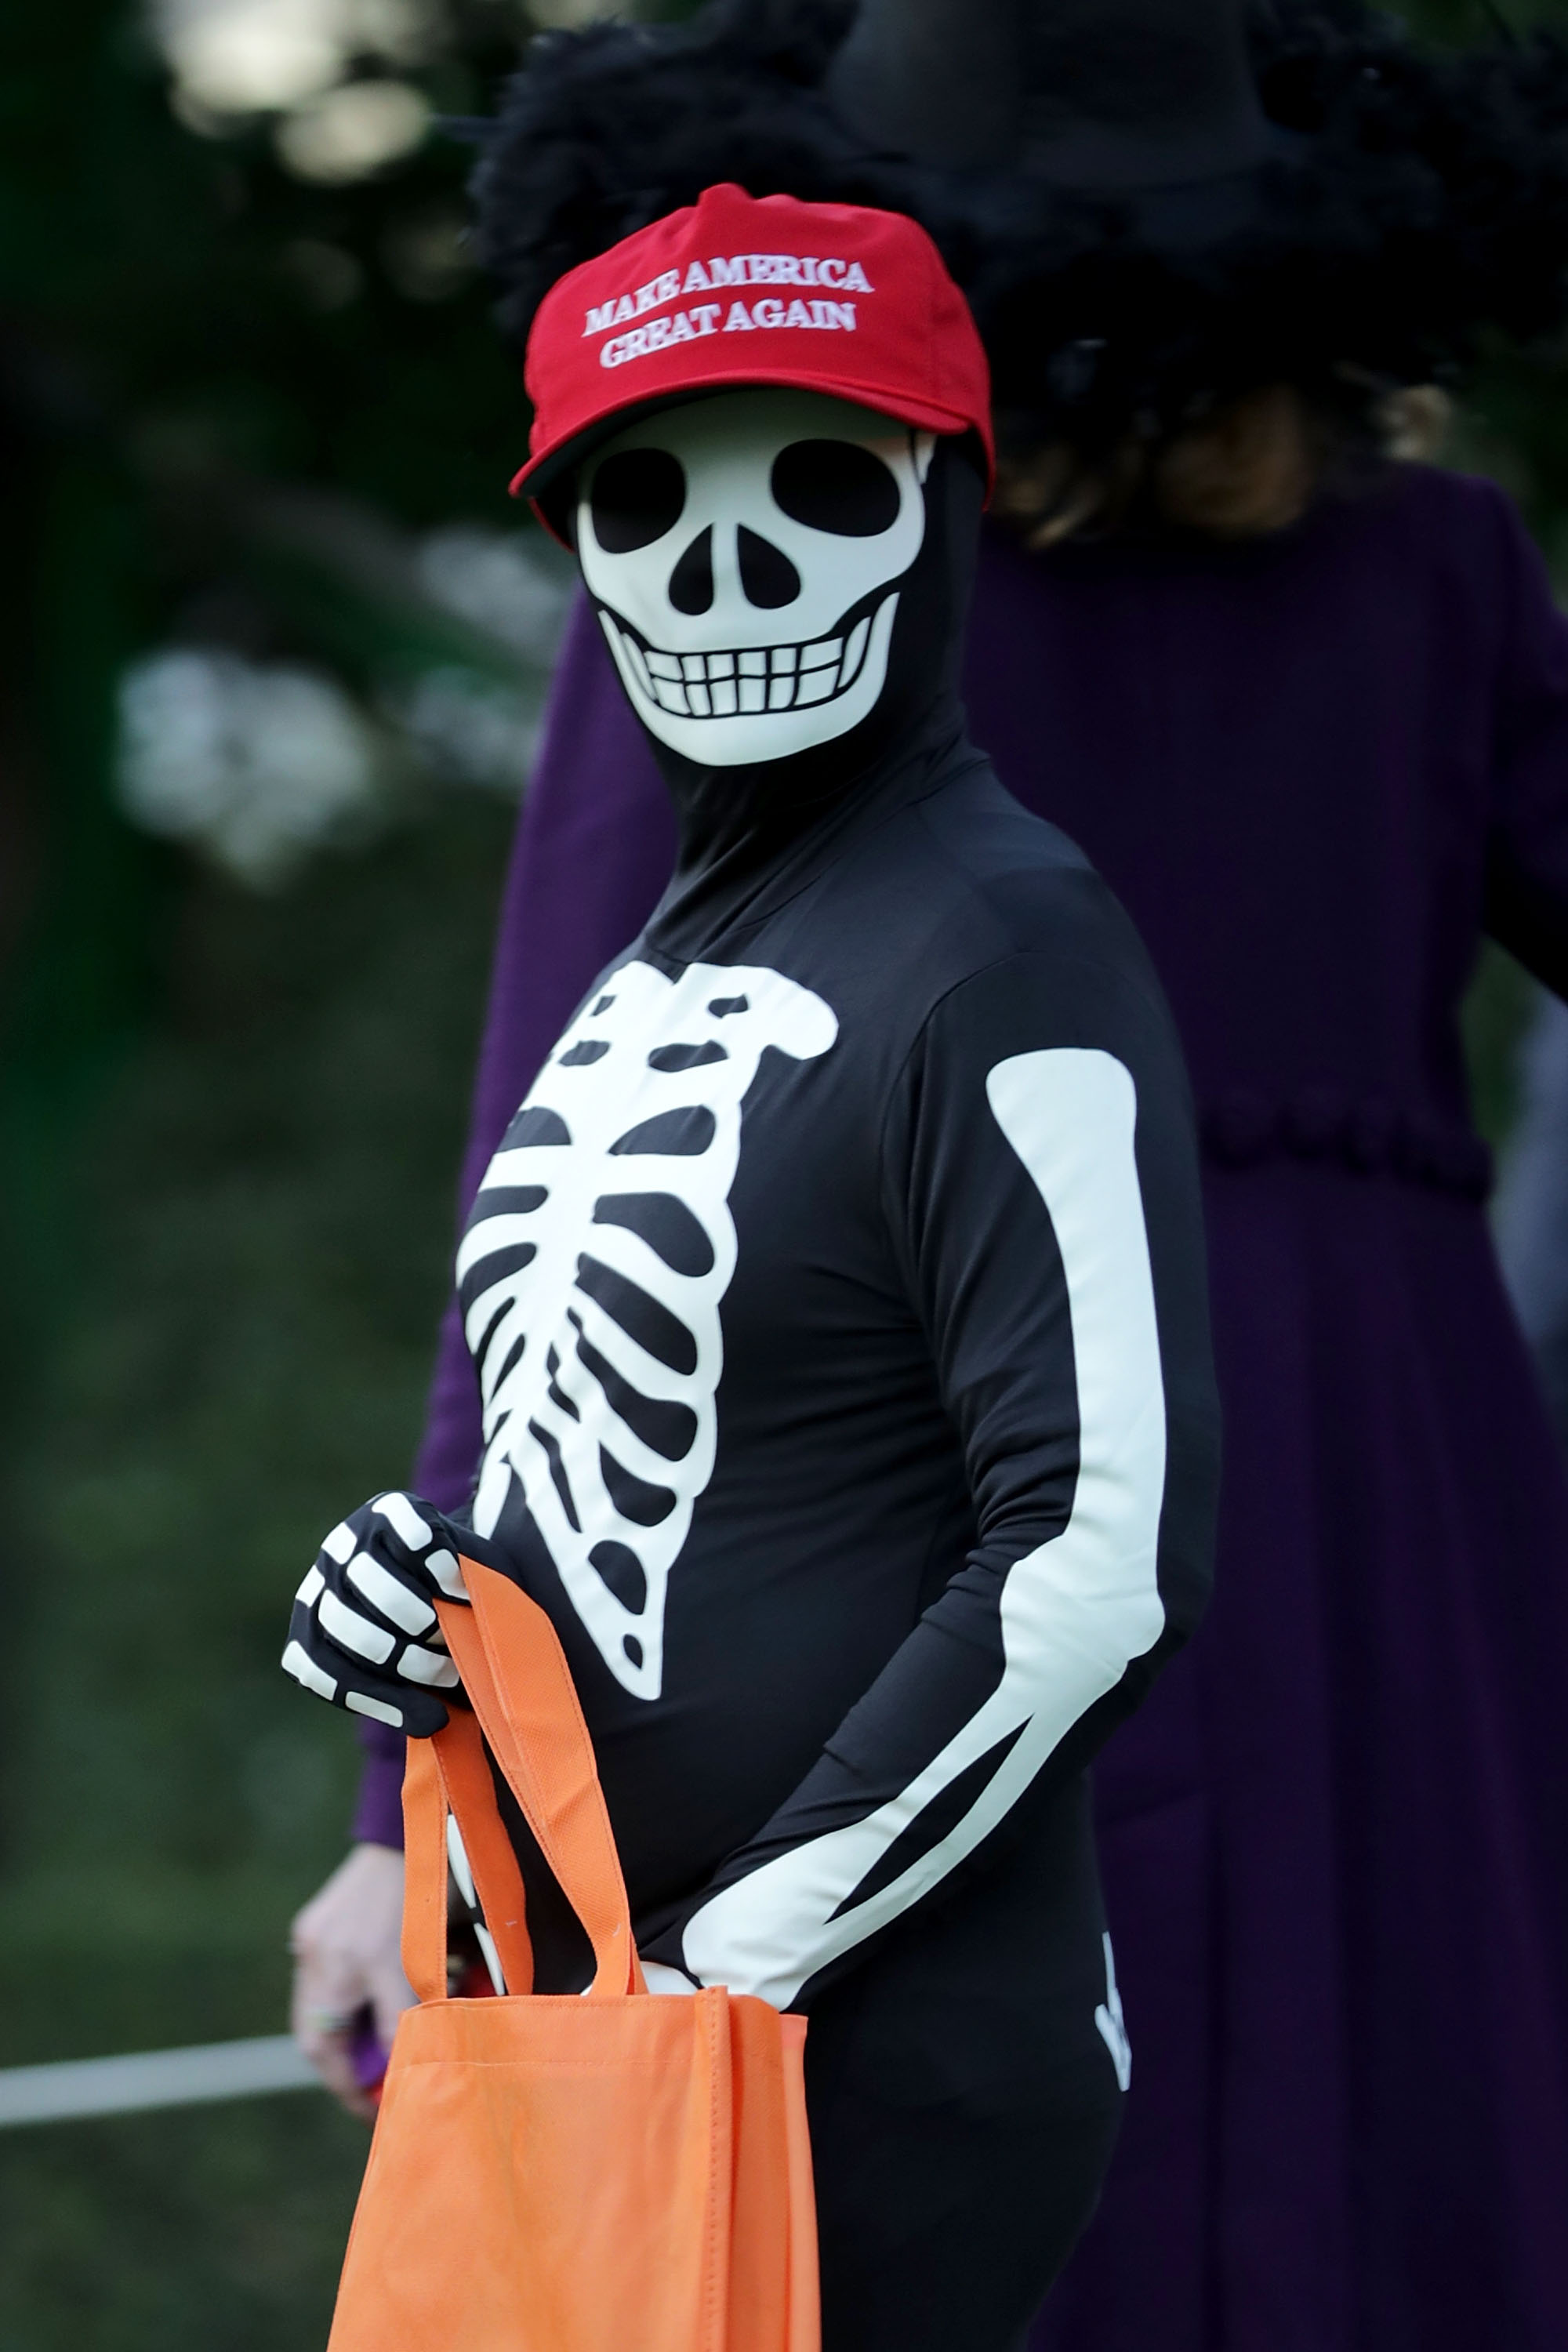 A person in a skeleton costume wearing a MAGA hat